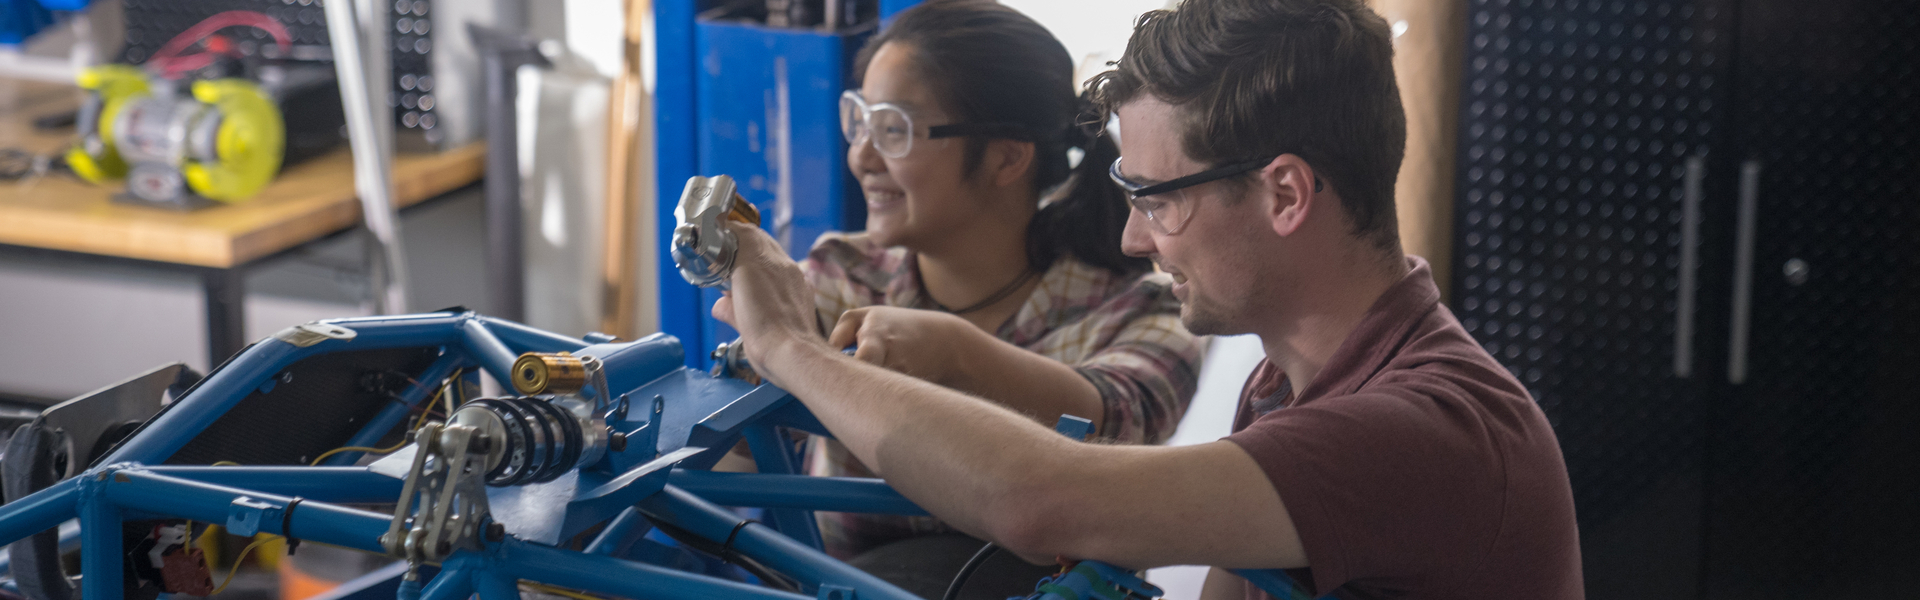 Male and female students working on a mechanical project in an engineering lab